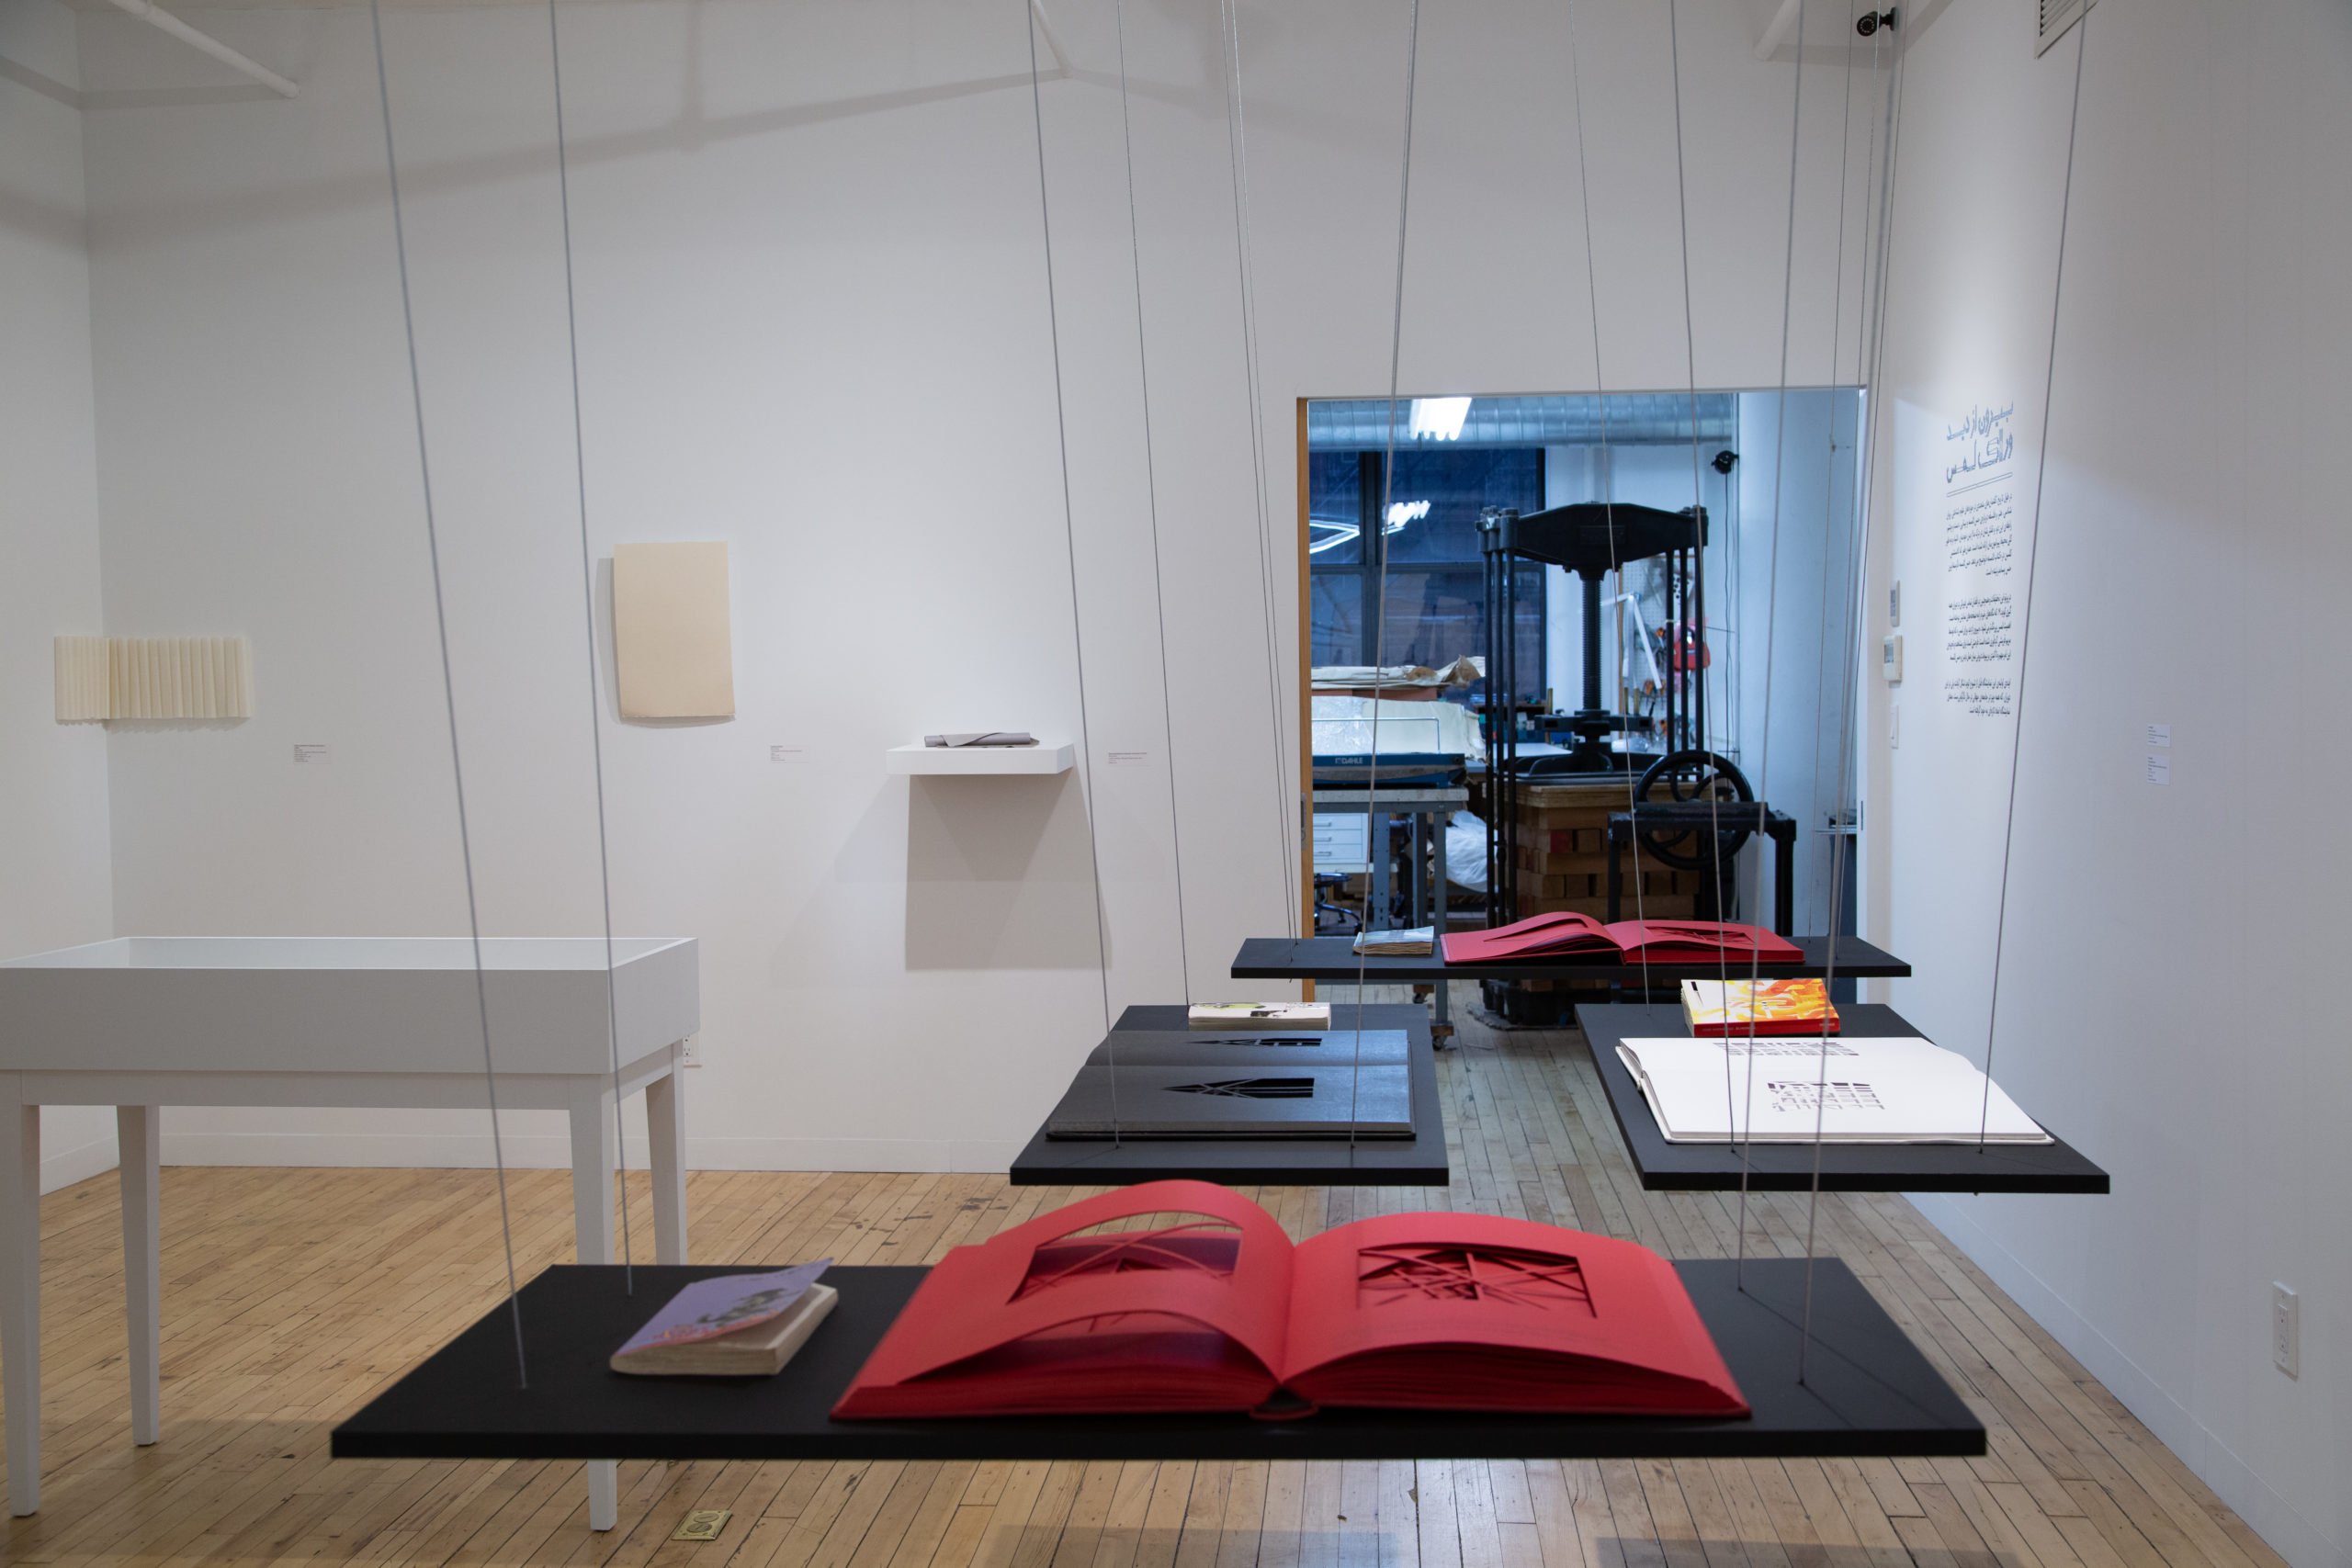 A photo of a large red book opened on a black floating table. The red book has rectangular cutouts. In the background you can see two more floating surfaces with a white book and a black book. The walls are painted white.